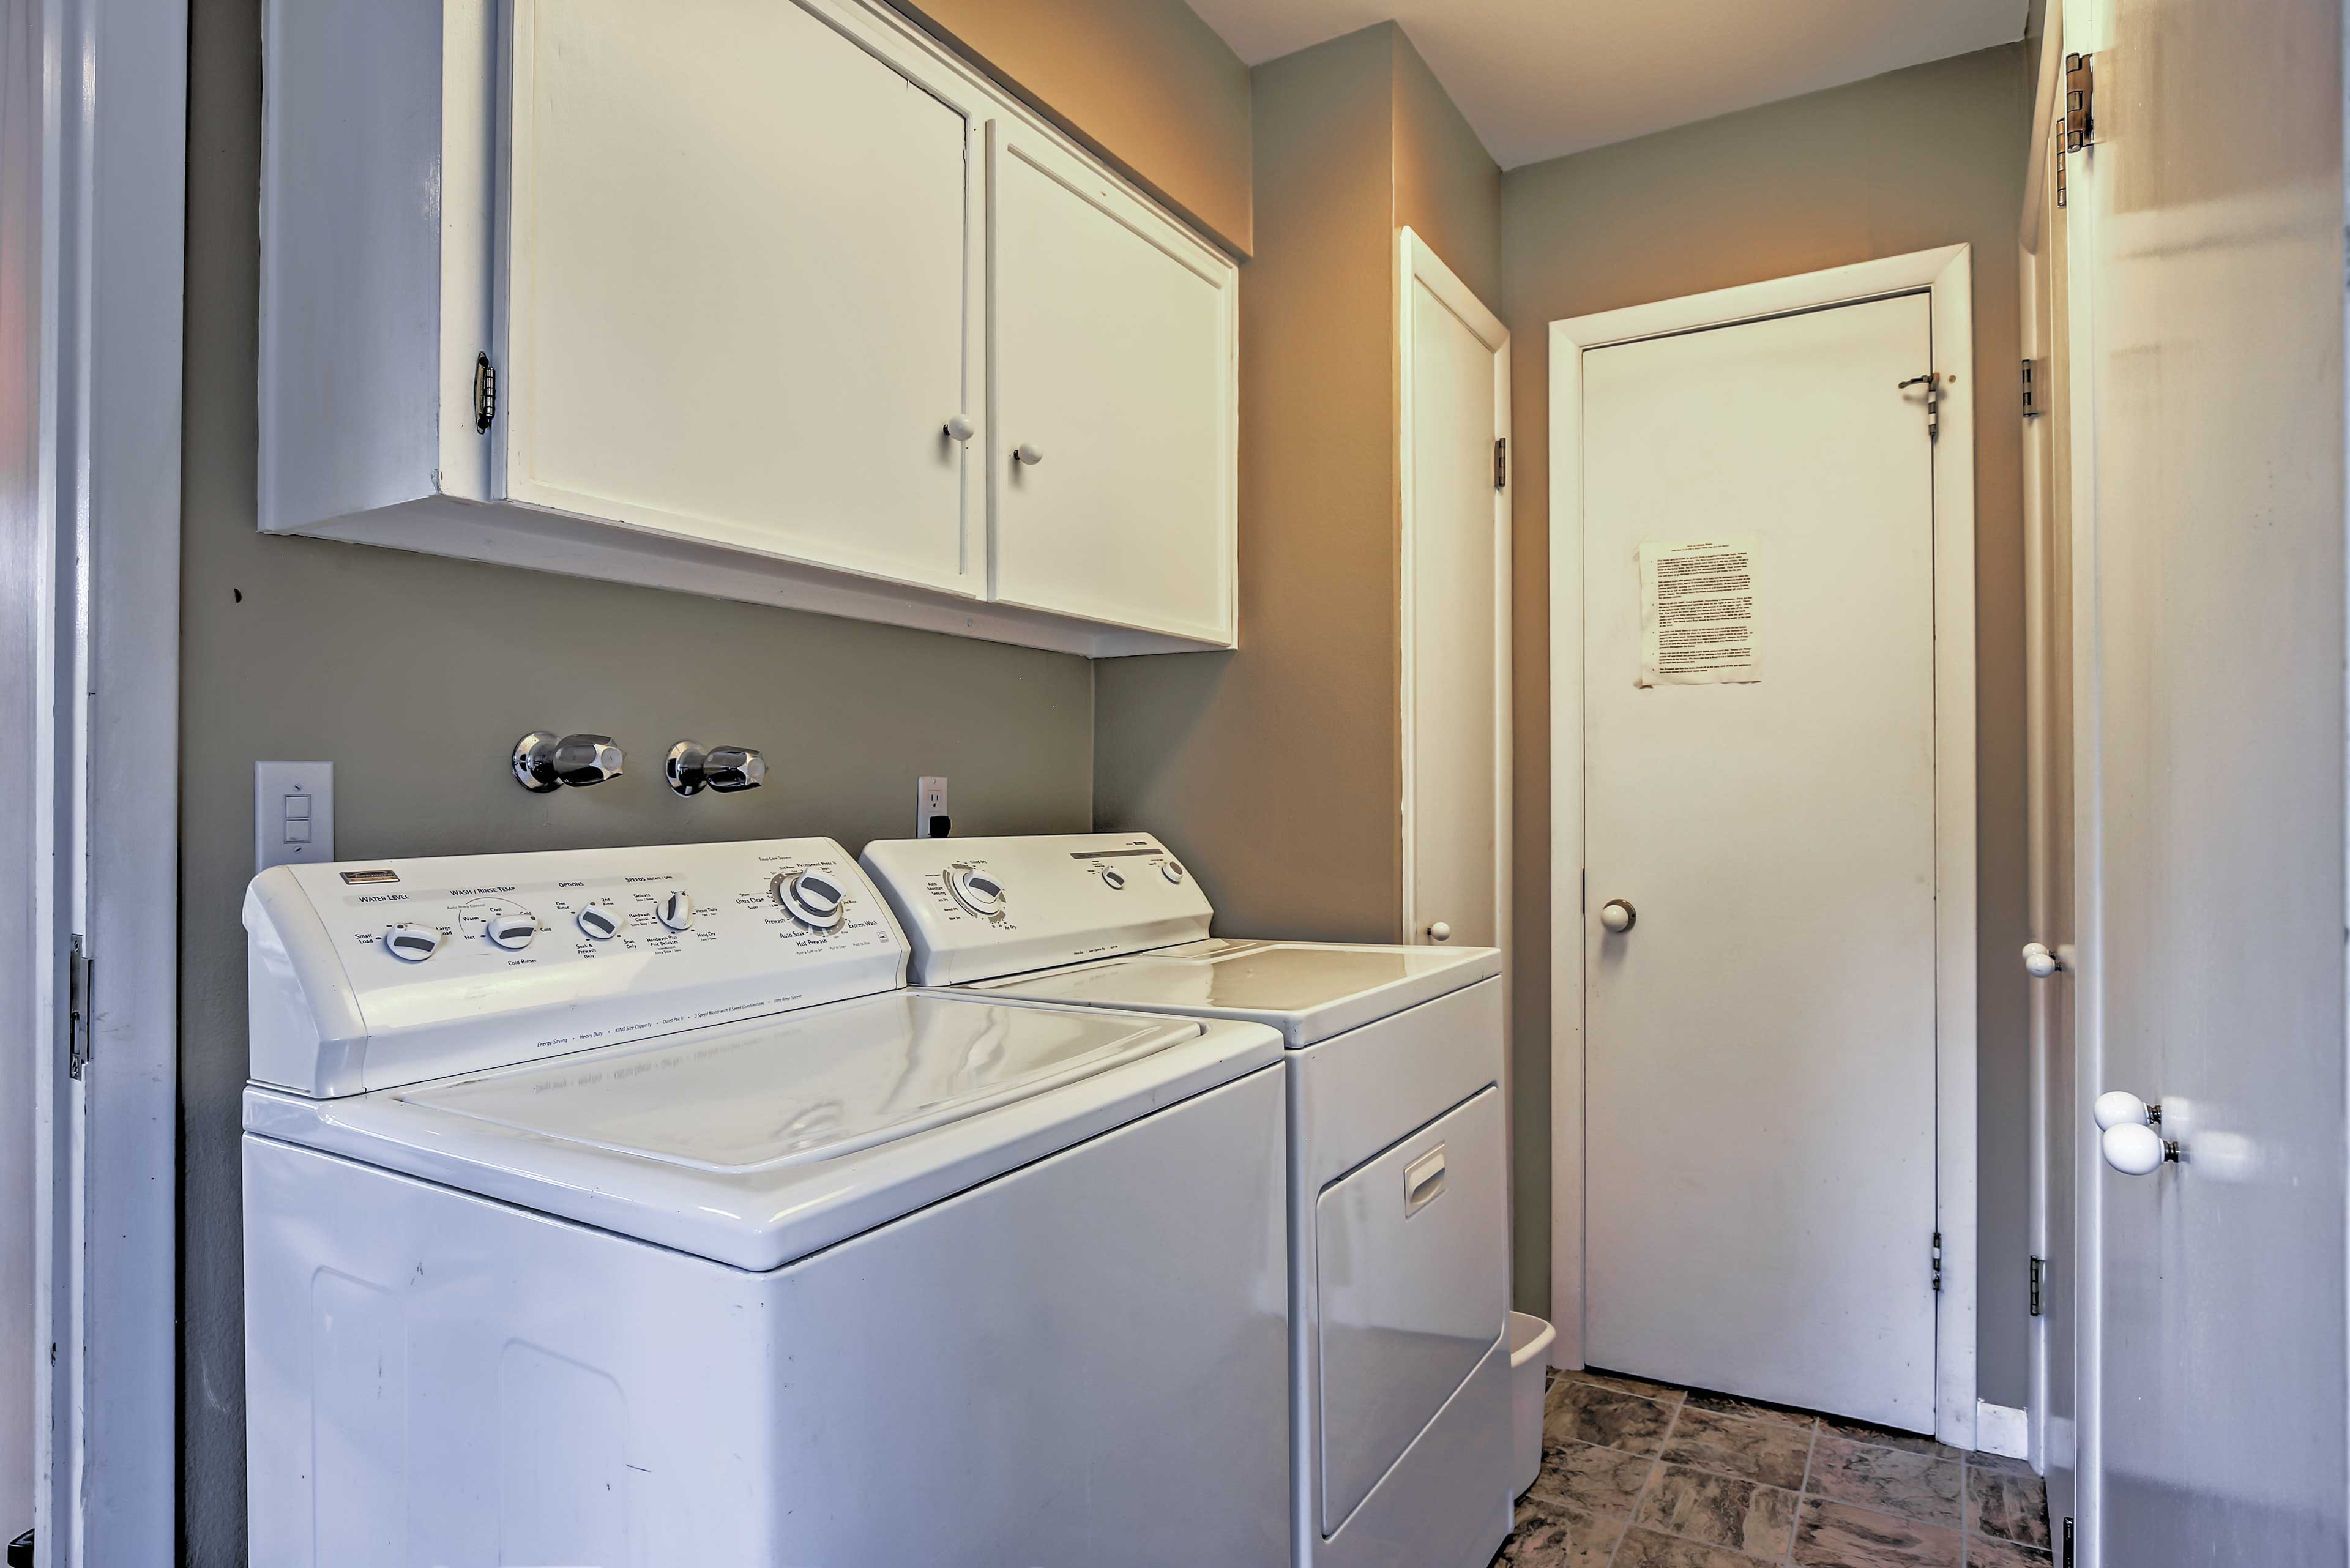 Laundry machines are included for your convenience.